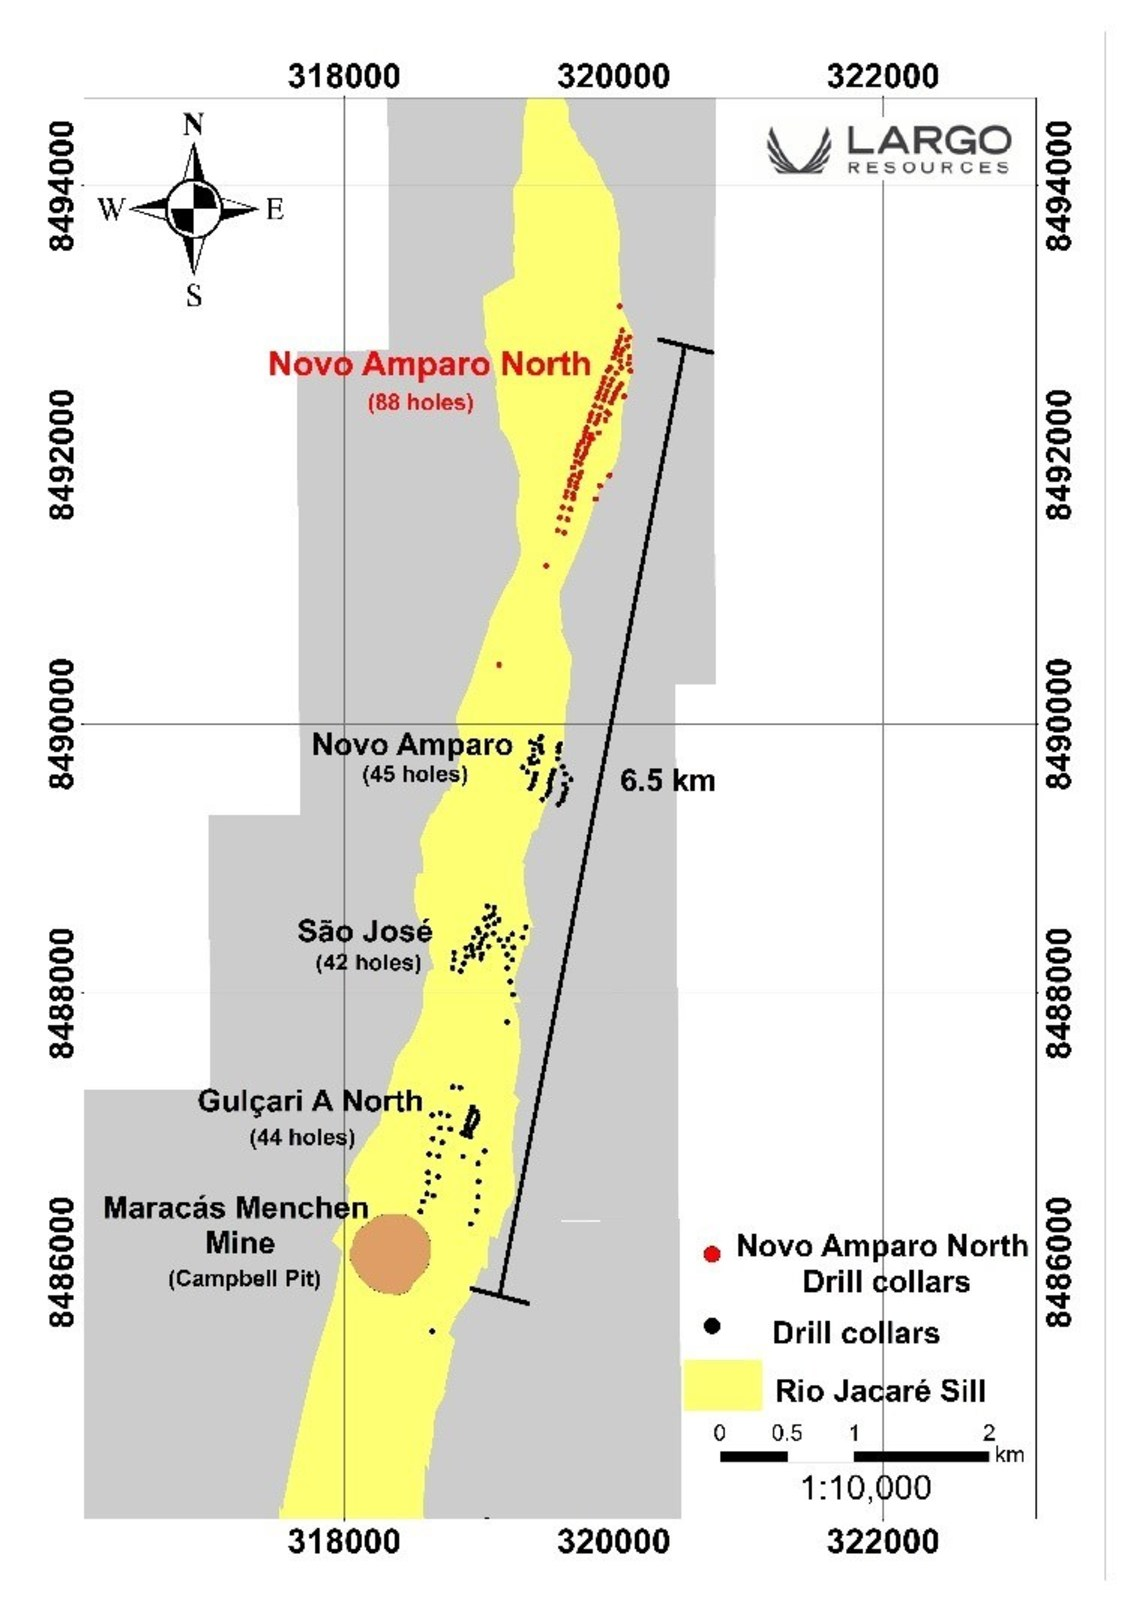 Figure 1:  Rio Jacaré Sill Showing the Maracás Menchen Mine - Campbell Pit and Satellite Deposits